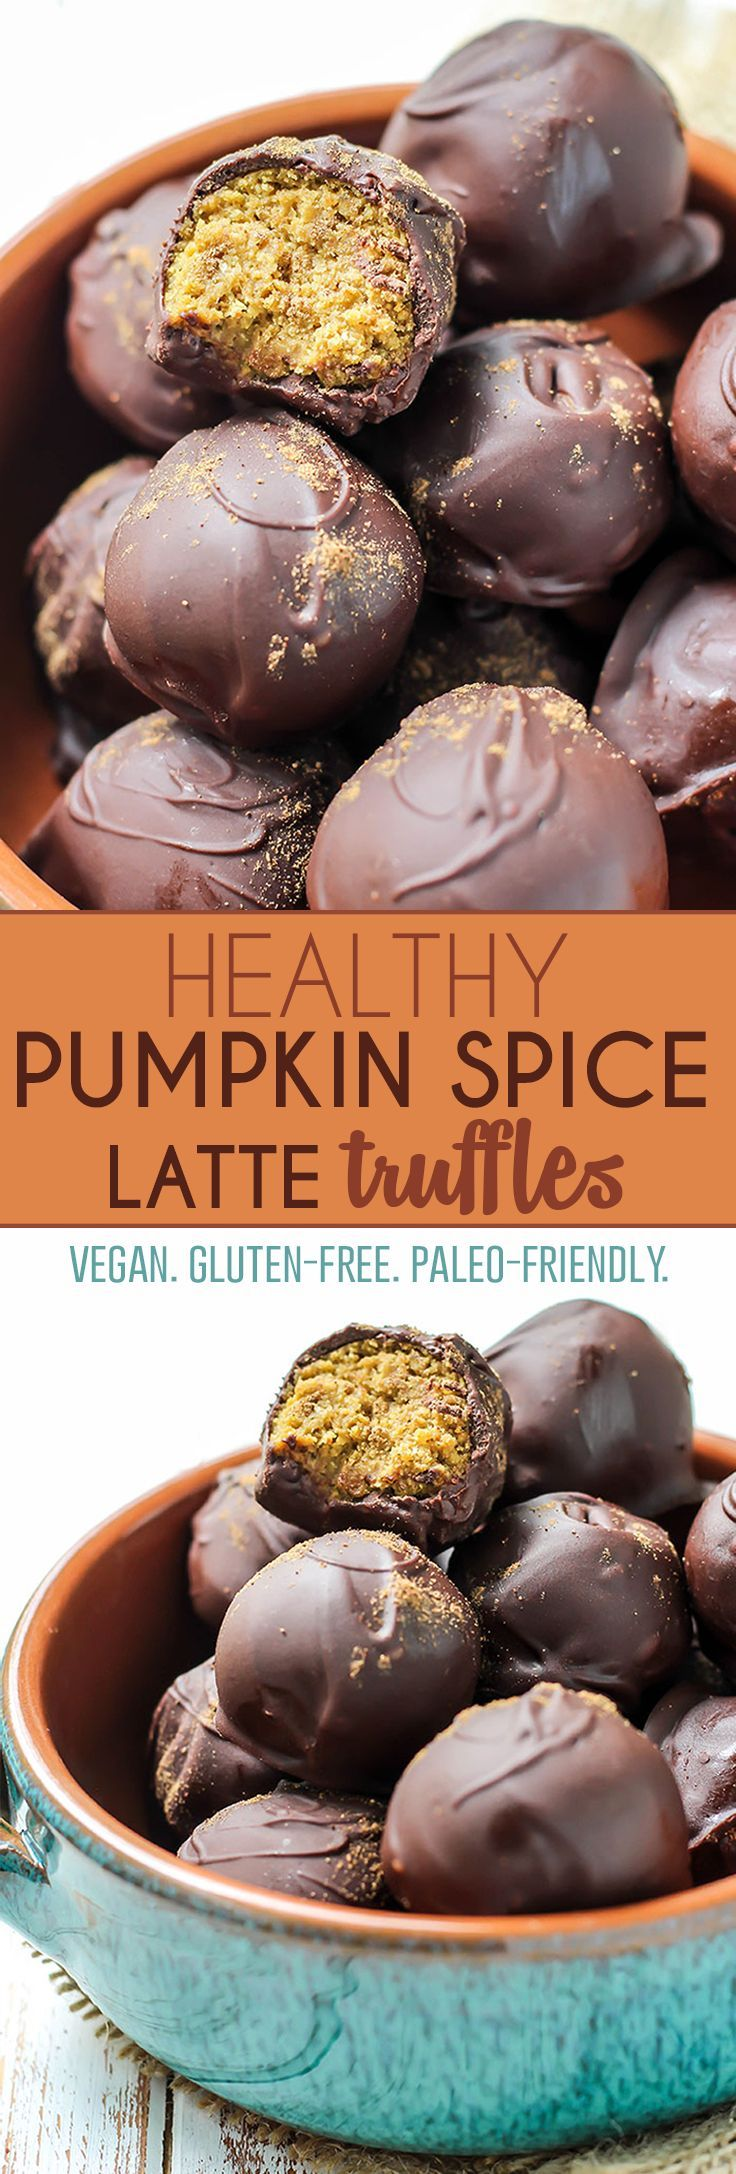 Love these Pumpkin Spice Latte Truffles. Your favorite fall drink transformed into a healthy chocolate treat! Made with plant protein blend for a superfood boost, and a tested paleo option. Under 100 calories per truffle, vegan and gluten-free!